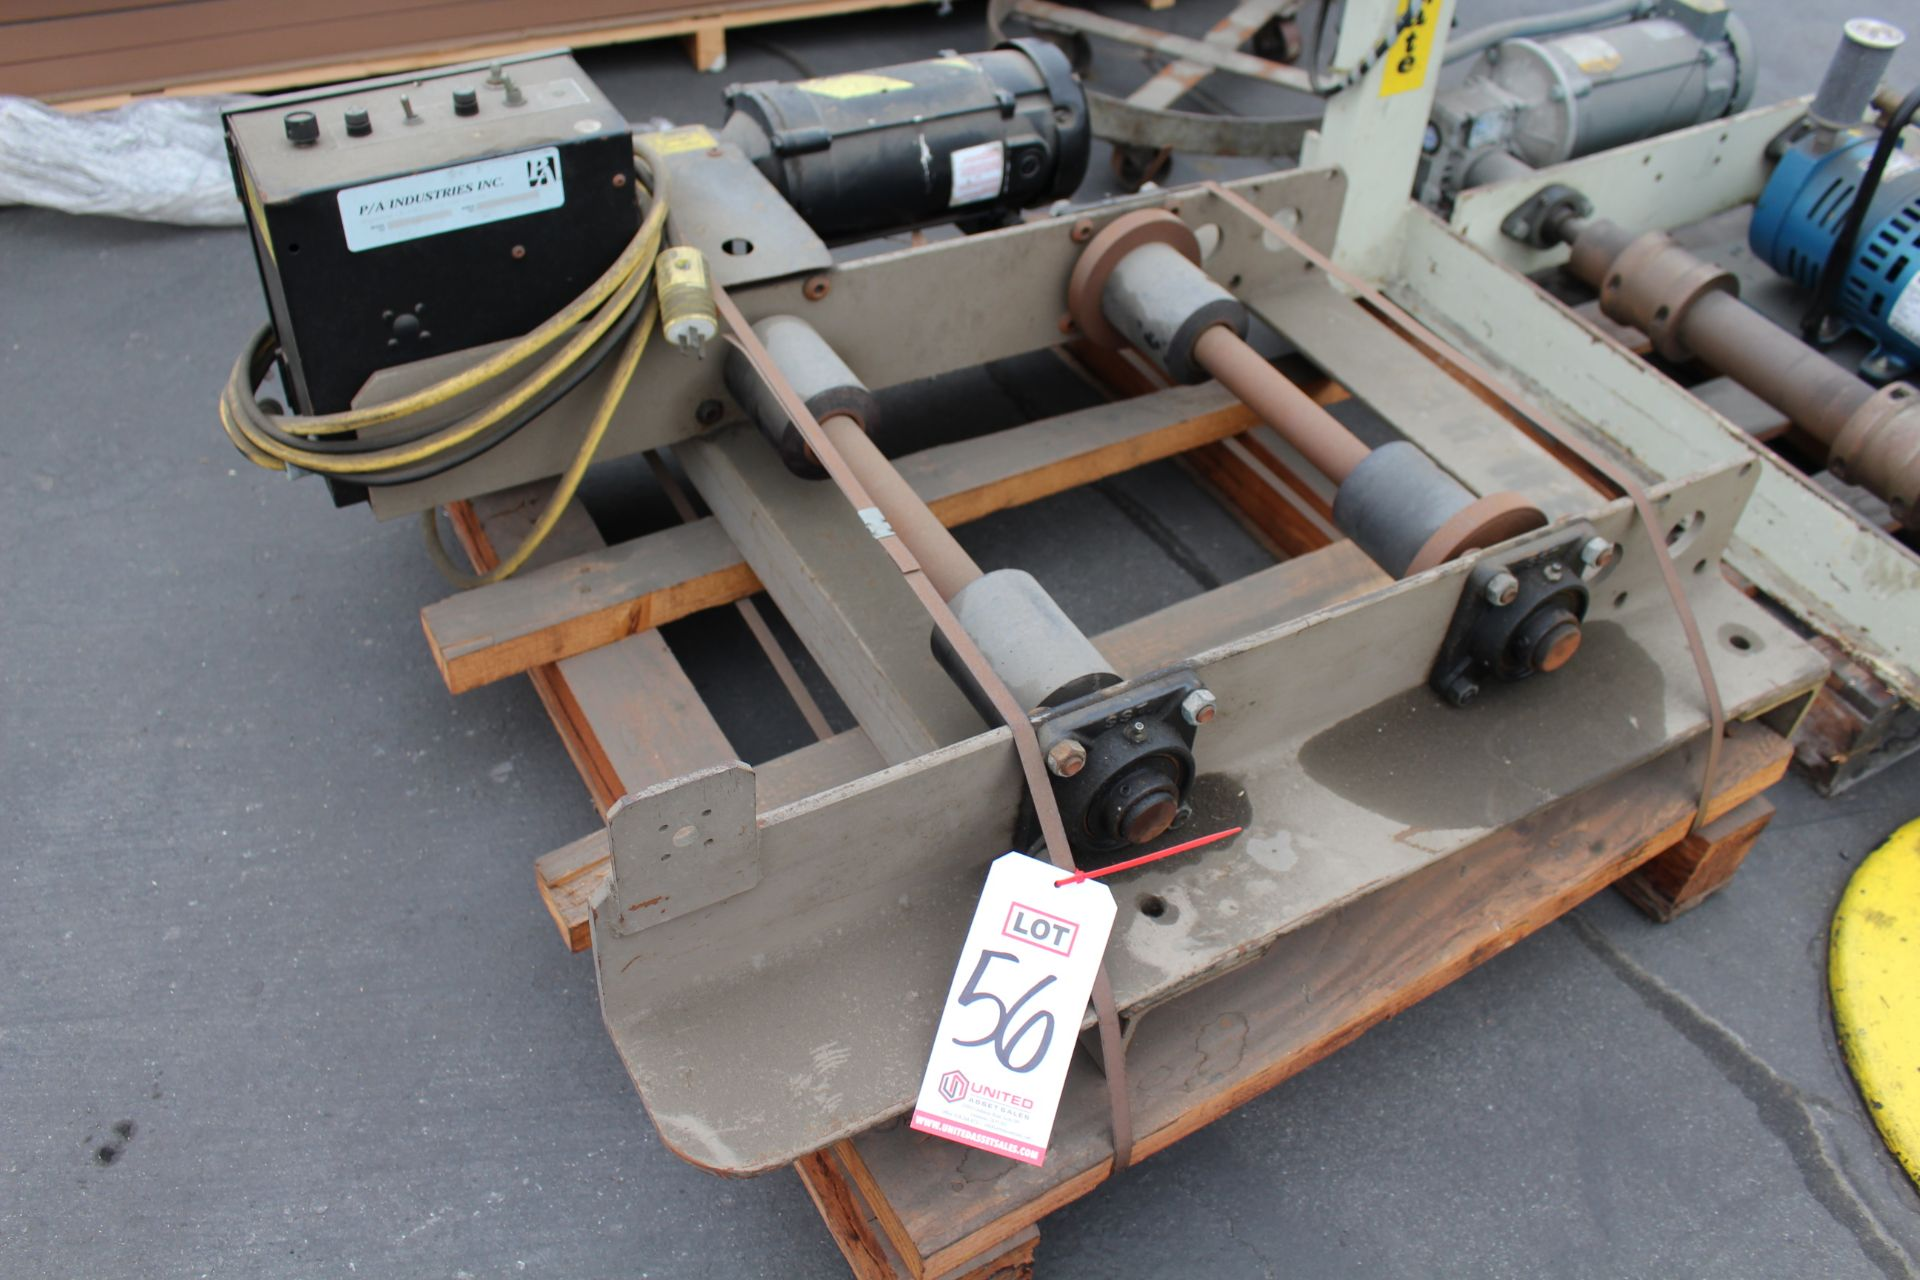 PA INDUSTRIES EQUIPMENT - Image 2 of 2